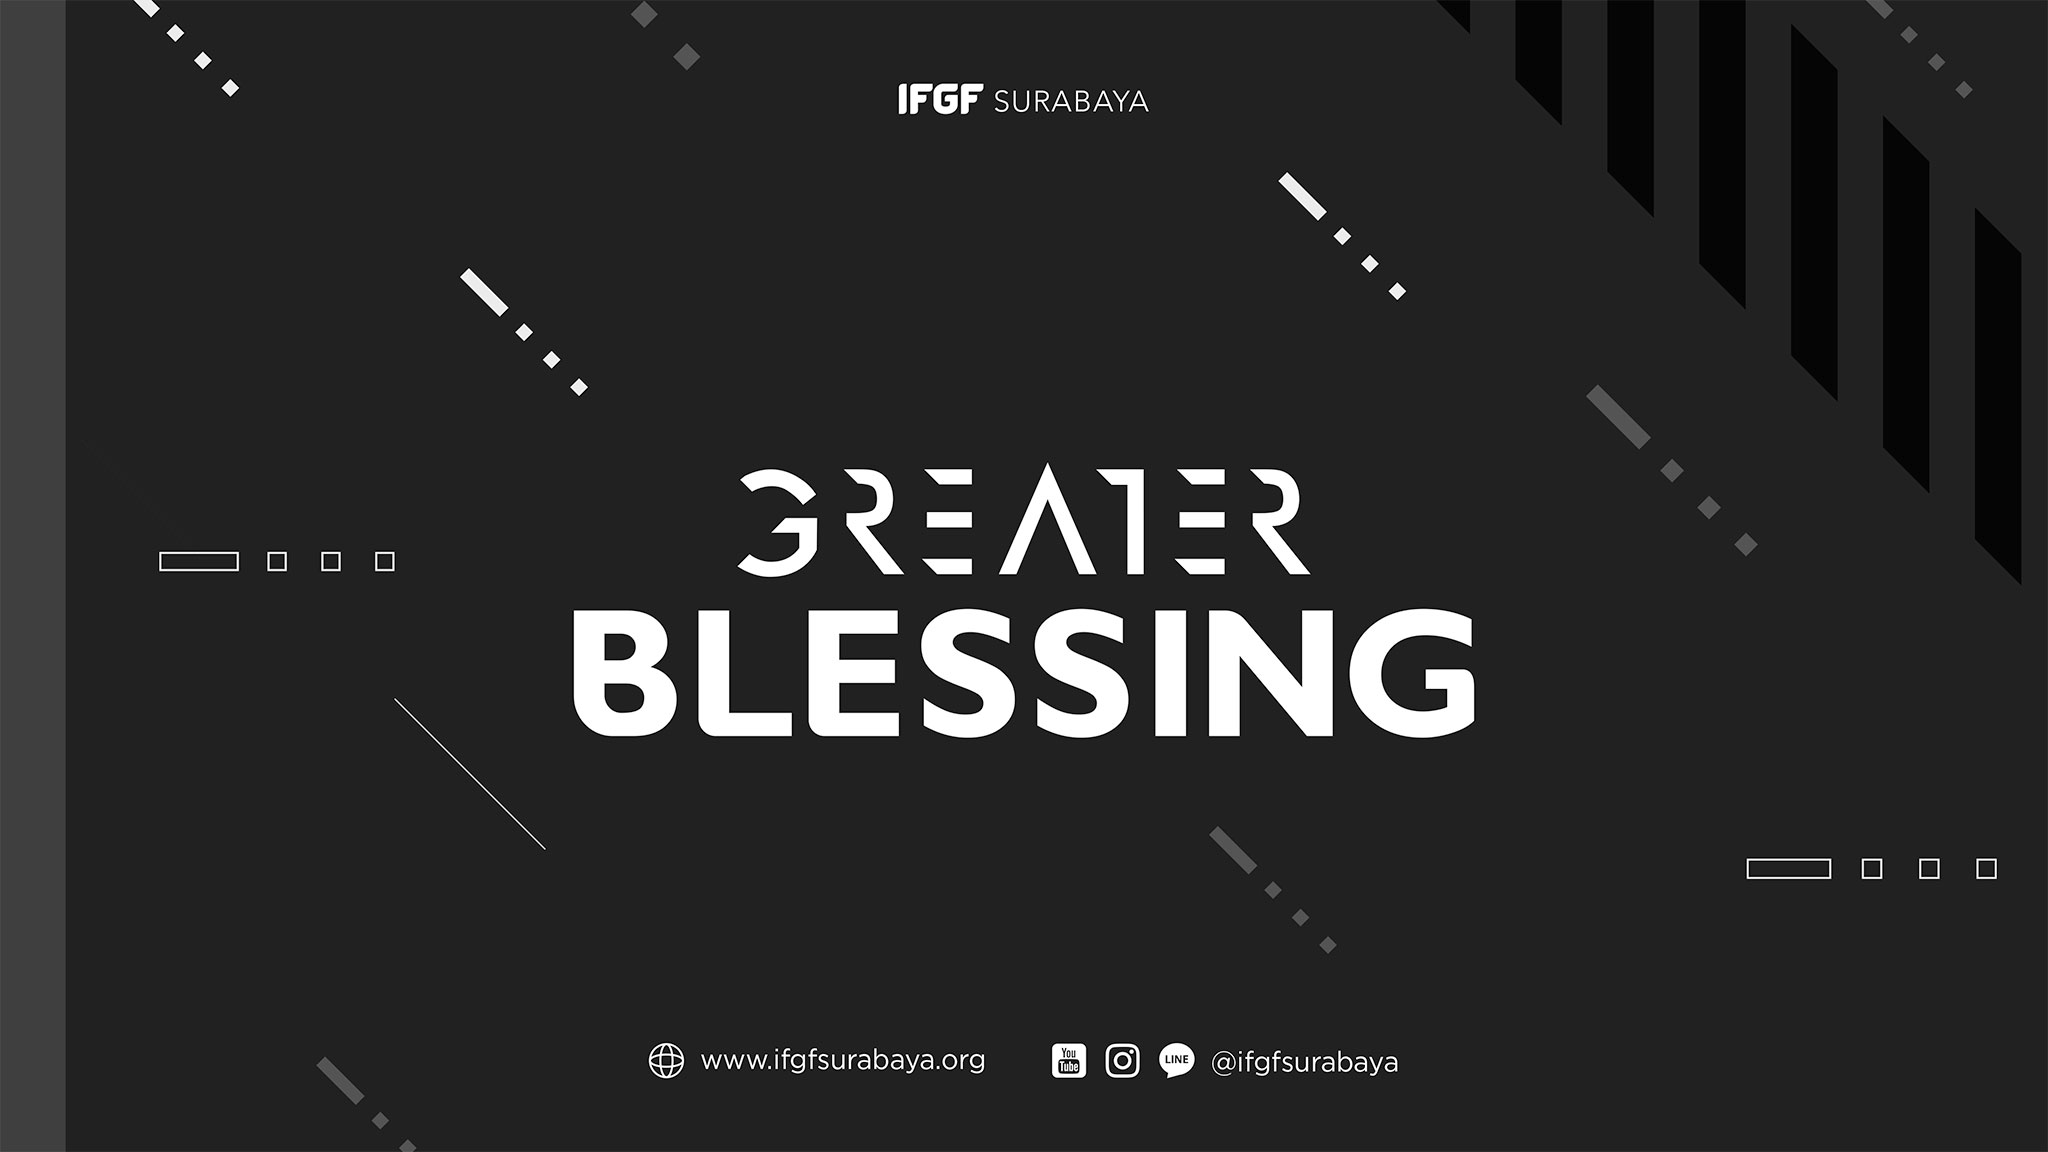 Greater Blessing